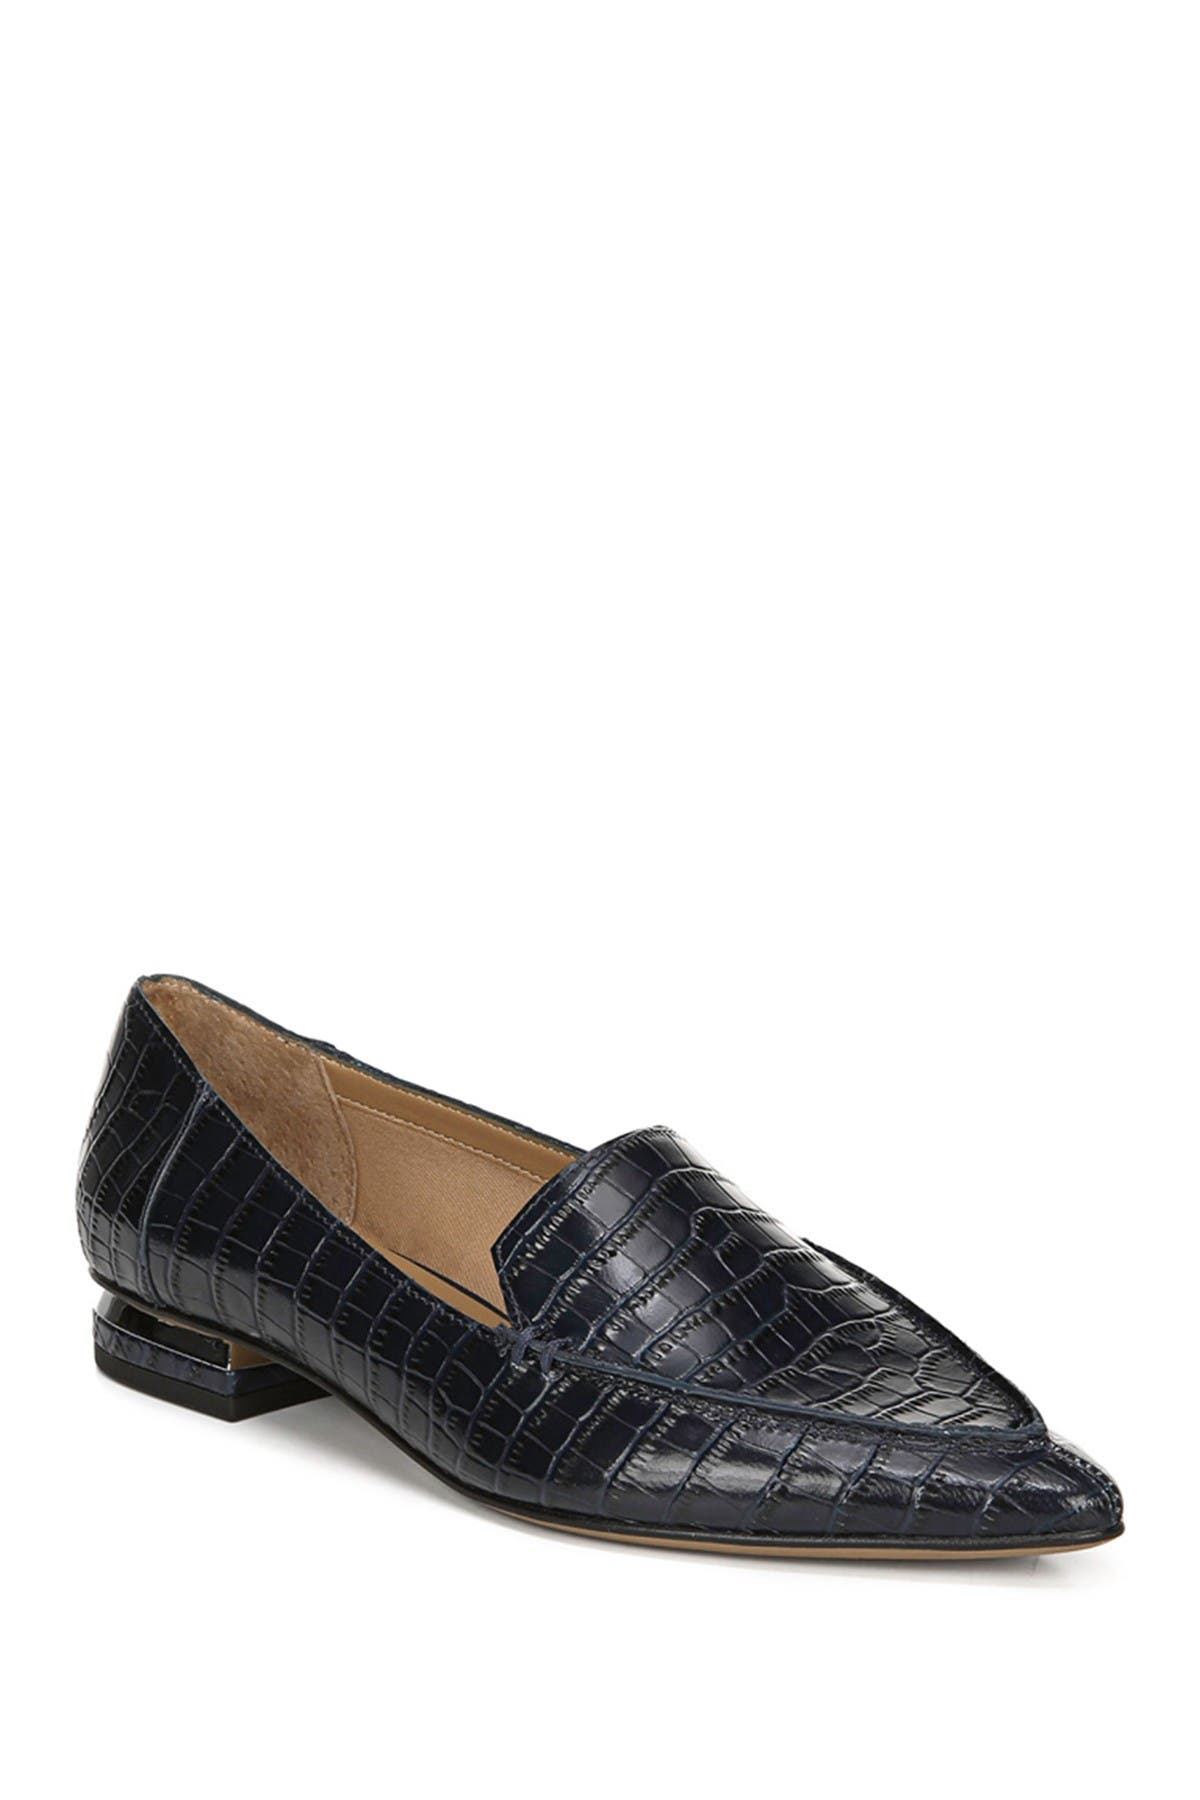 Image of Franco Sarto Starland Croc-Embossed Loafer